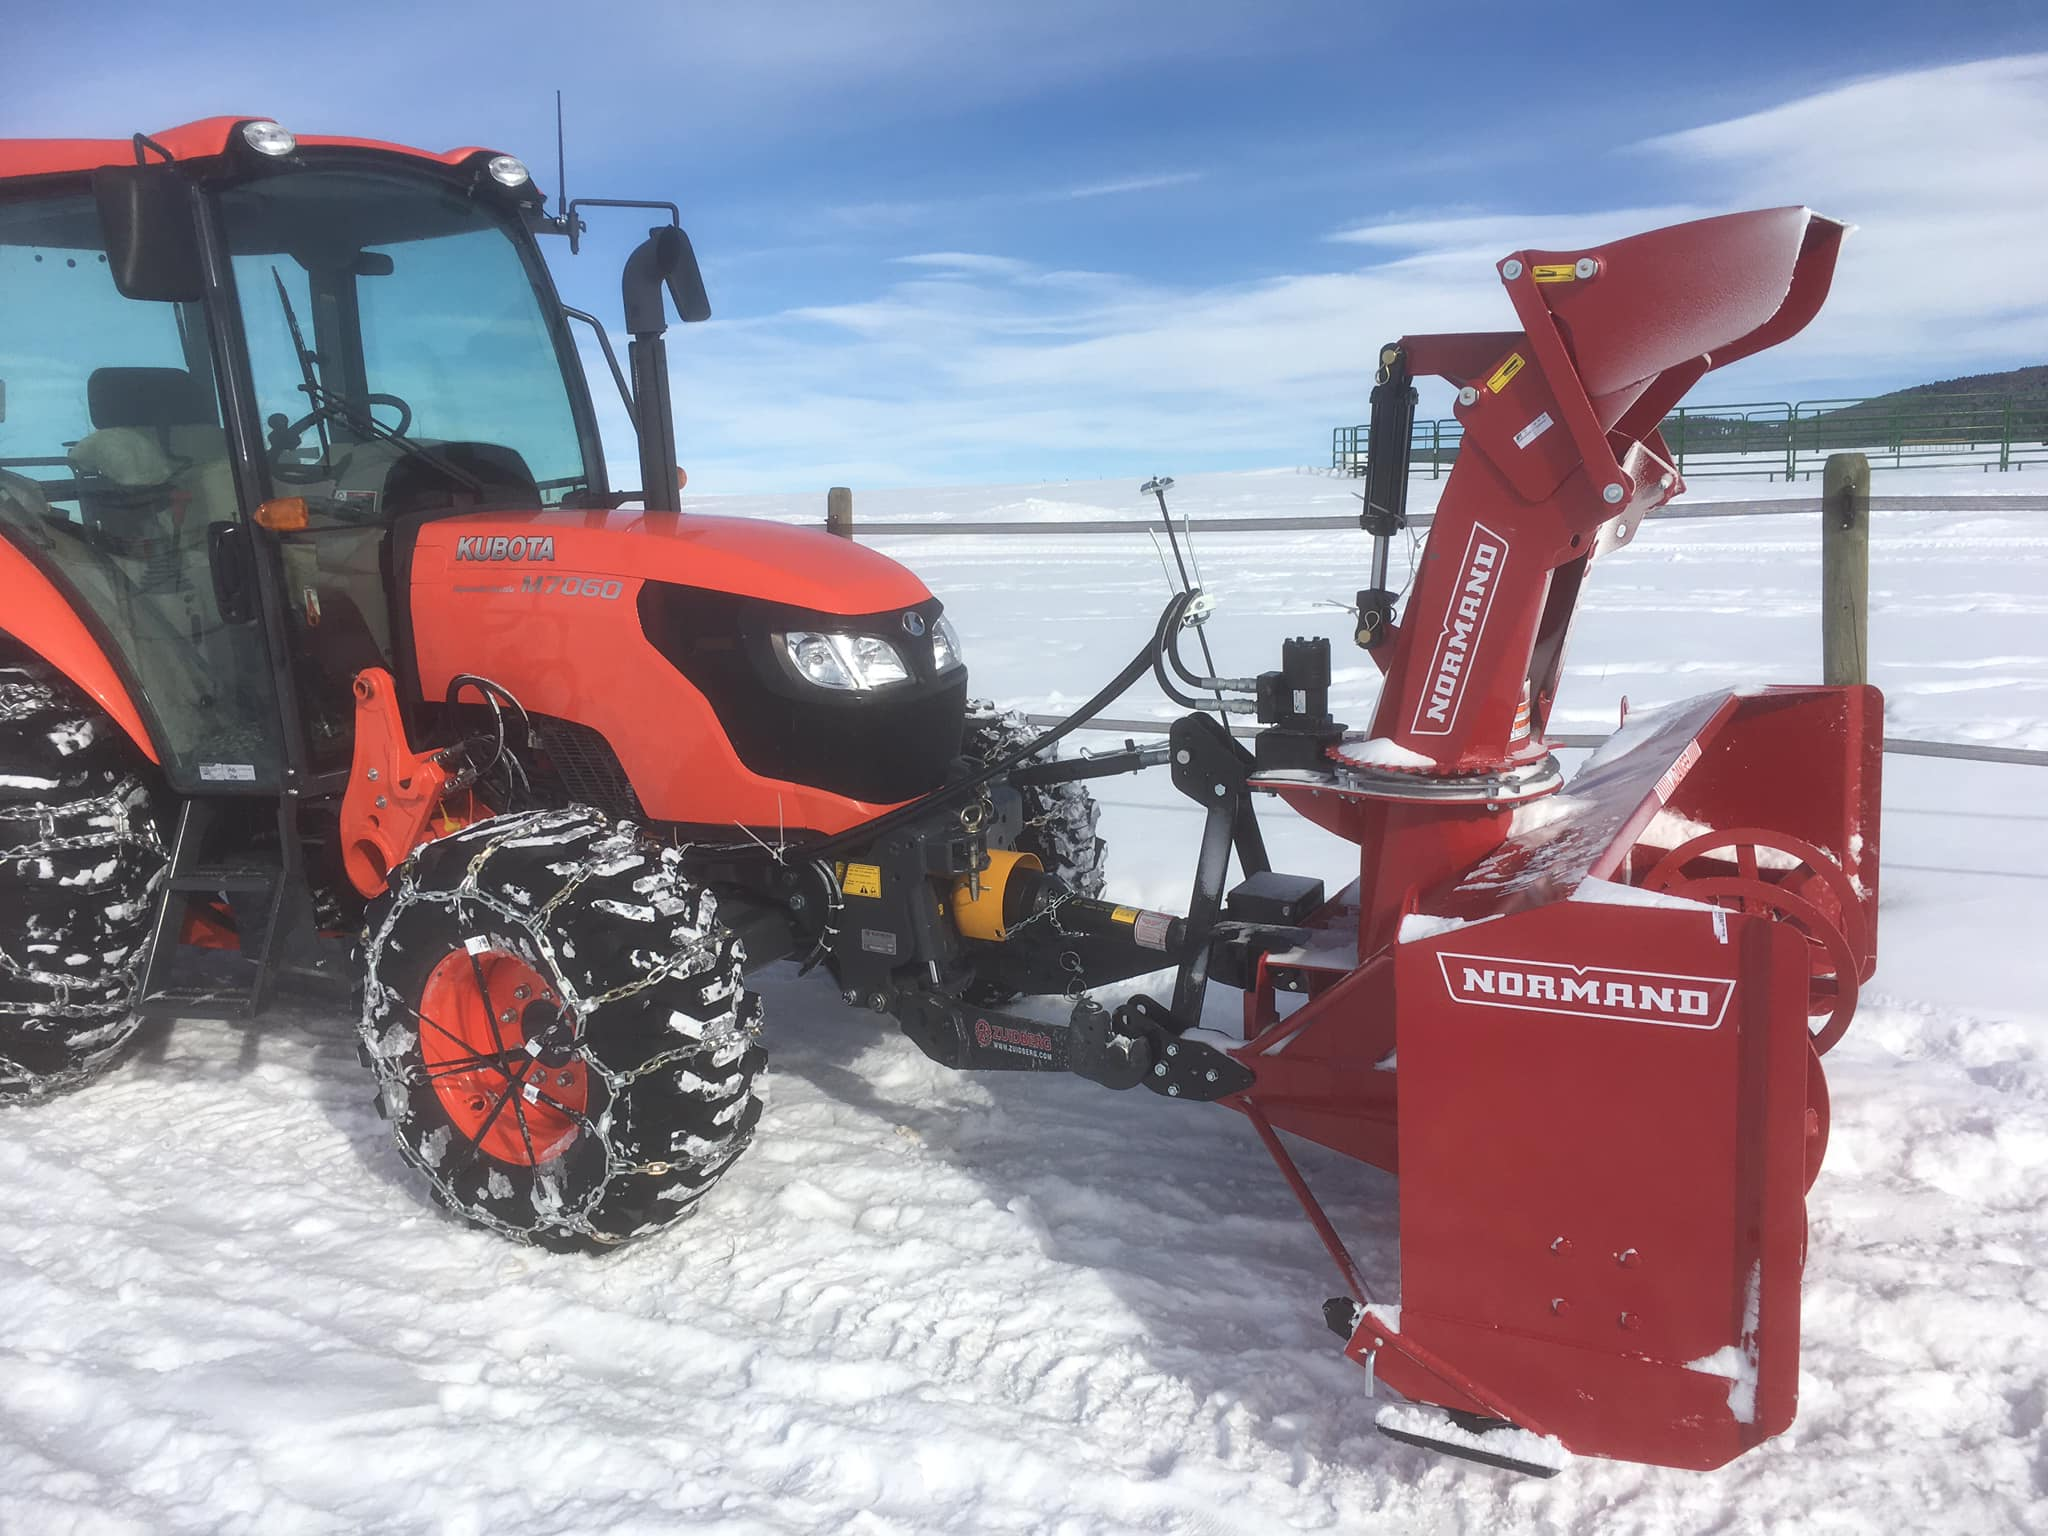 Sneeuwschuiven snow removal blade fronthitch New Holland